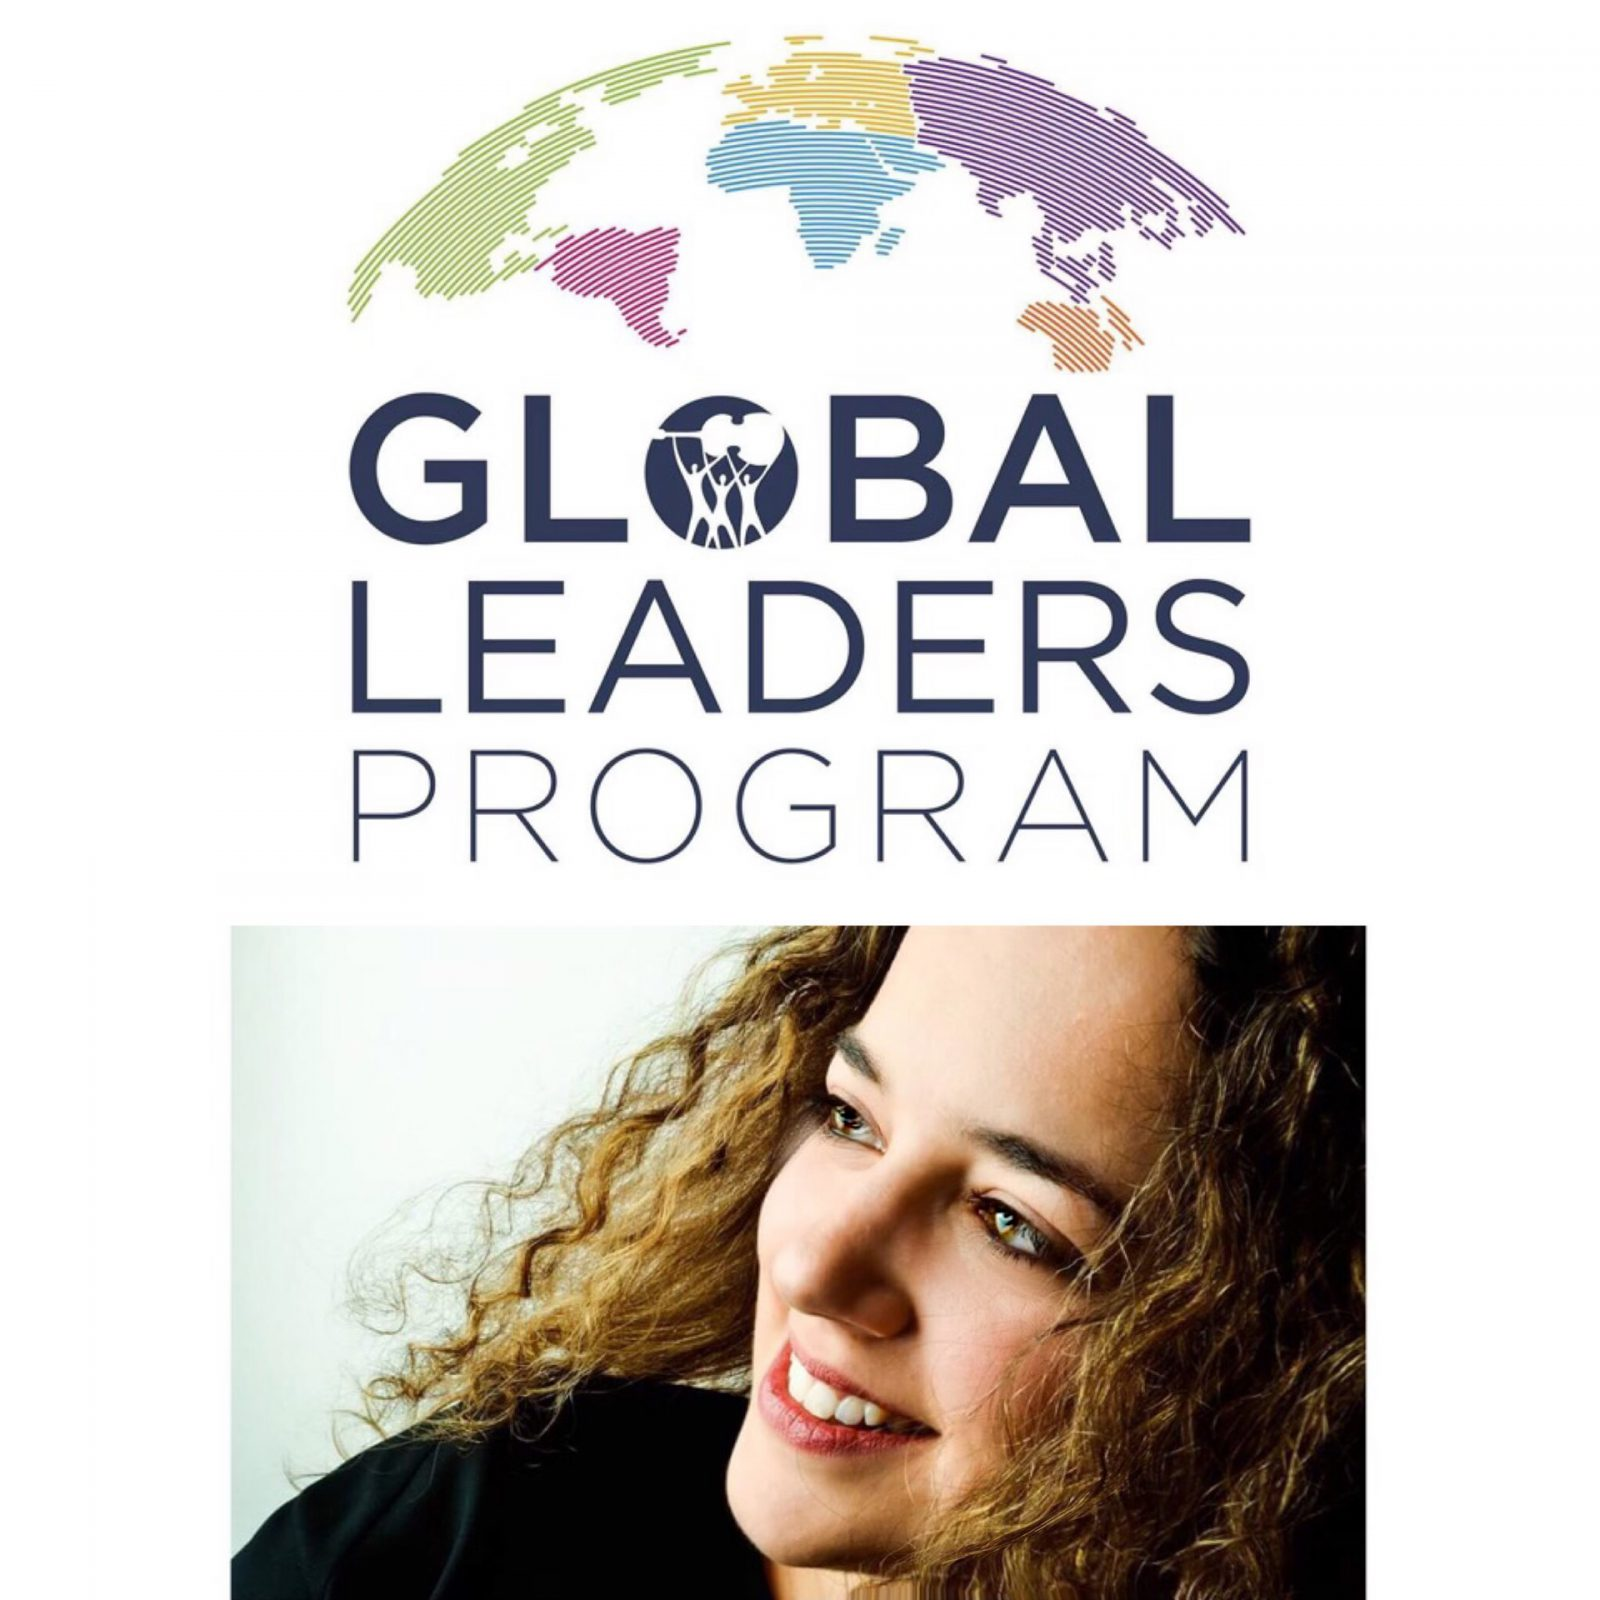 Global Leaders Program